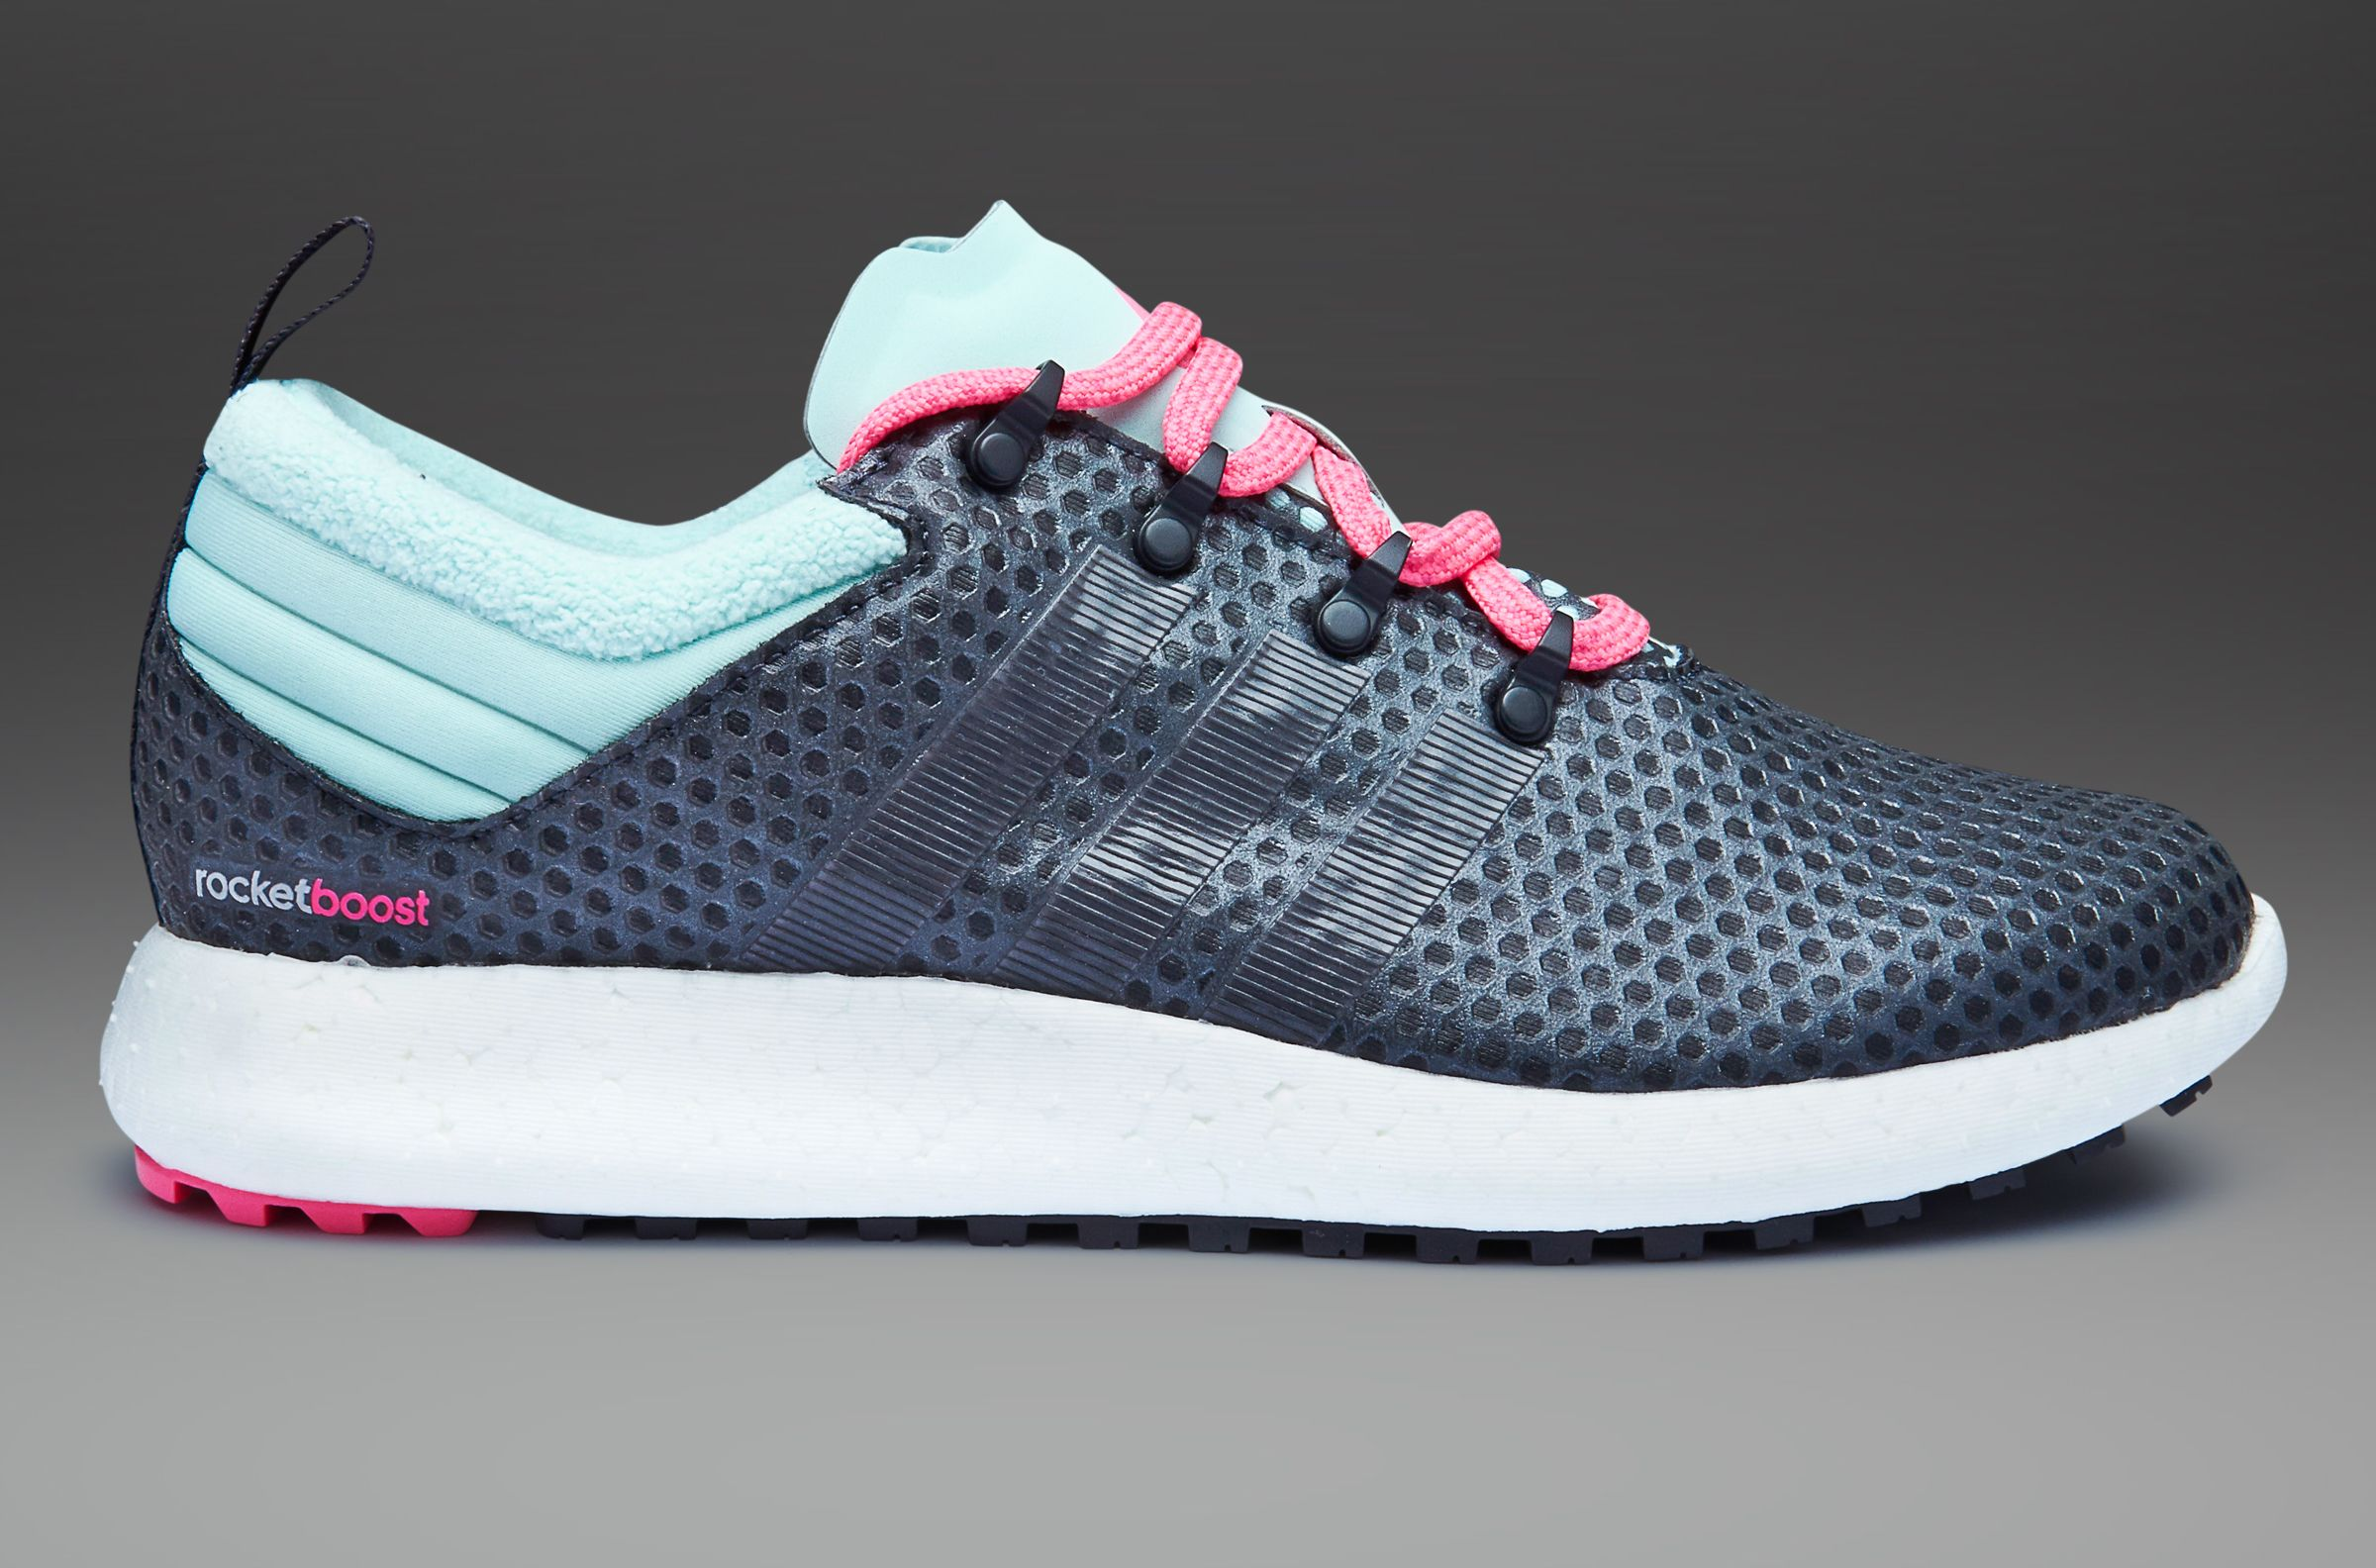 Climachill Cosmic Boost Shoes - Google Search